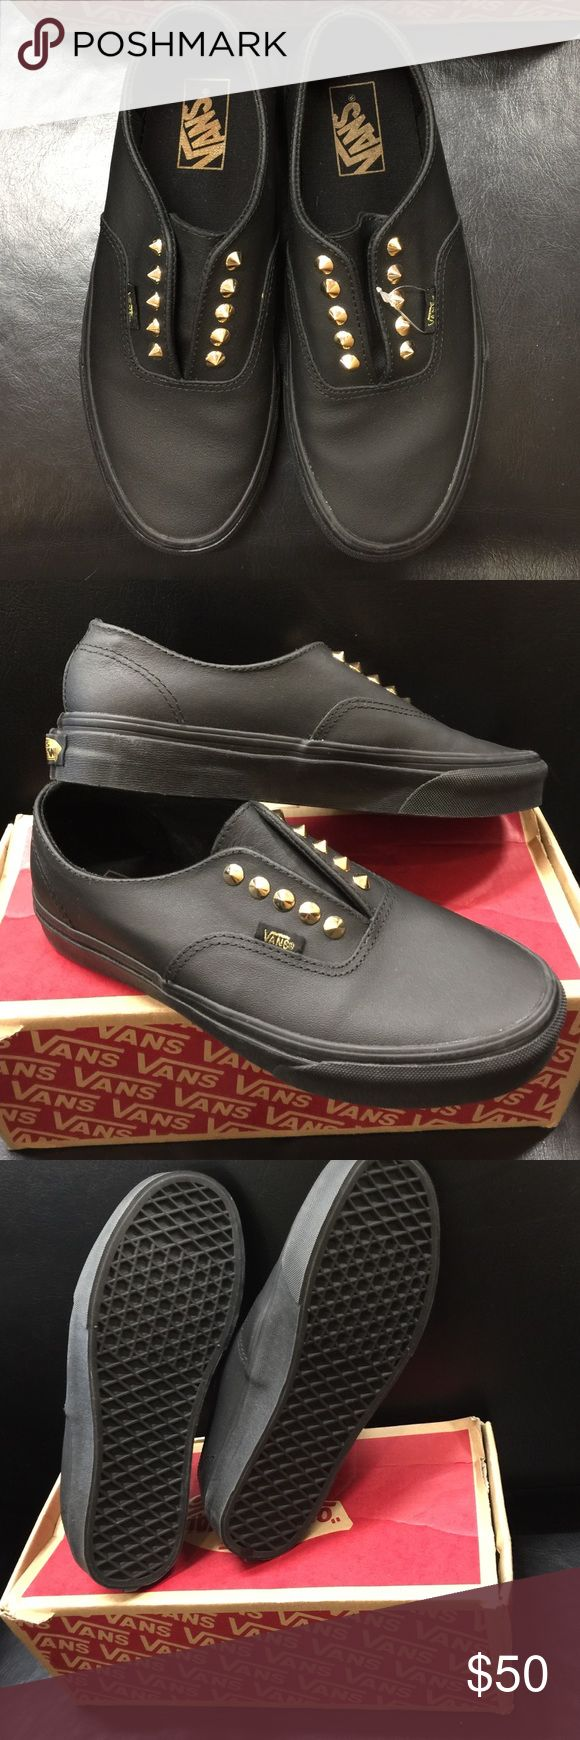 """Leather studded vans Leather, gold studded, """"authentic gore"""" vans. Men's size 7.5 us women's 9. Brand new with tags, never before worn! Comes from pet and smoke free home! Vans Shoes Sneakers"""